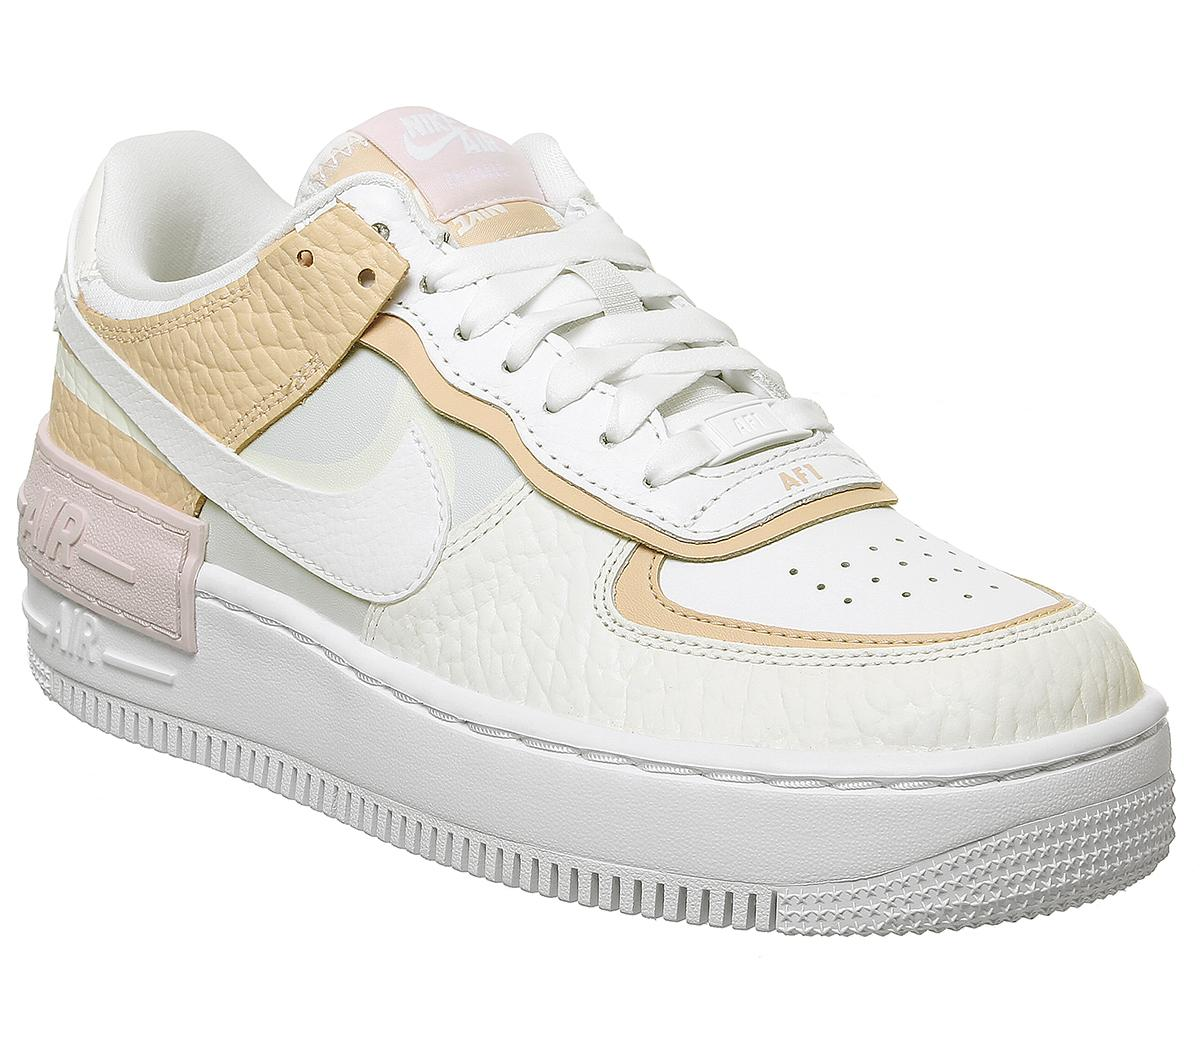 Nike Air Force 1 Shadow Trainers Spruce Aura White Sail Rose Hers Trainers Shop for nike air force 1 trainers at next.co.uk. air force 1 shadow trainers